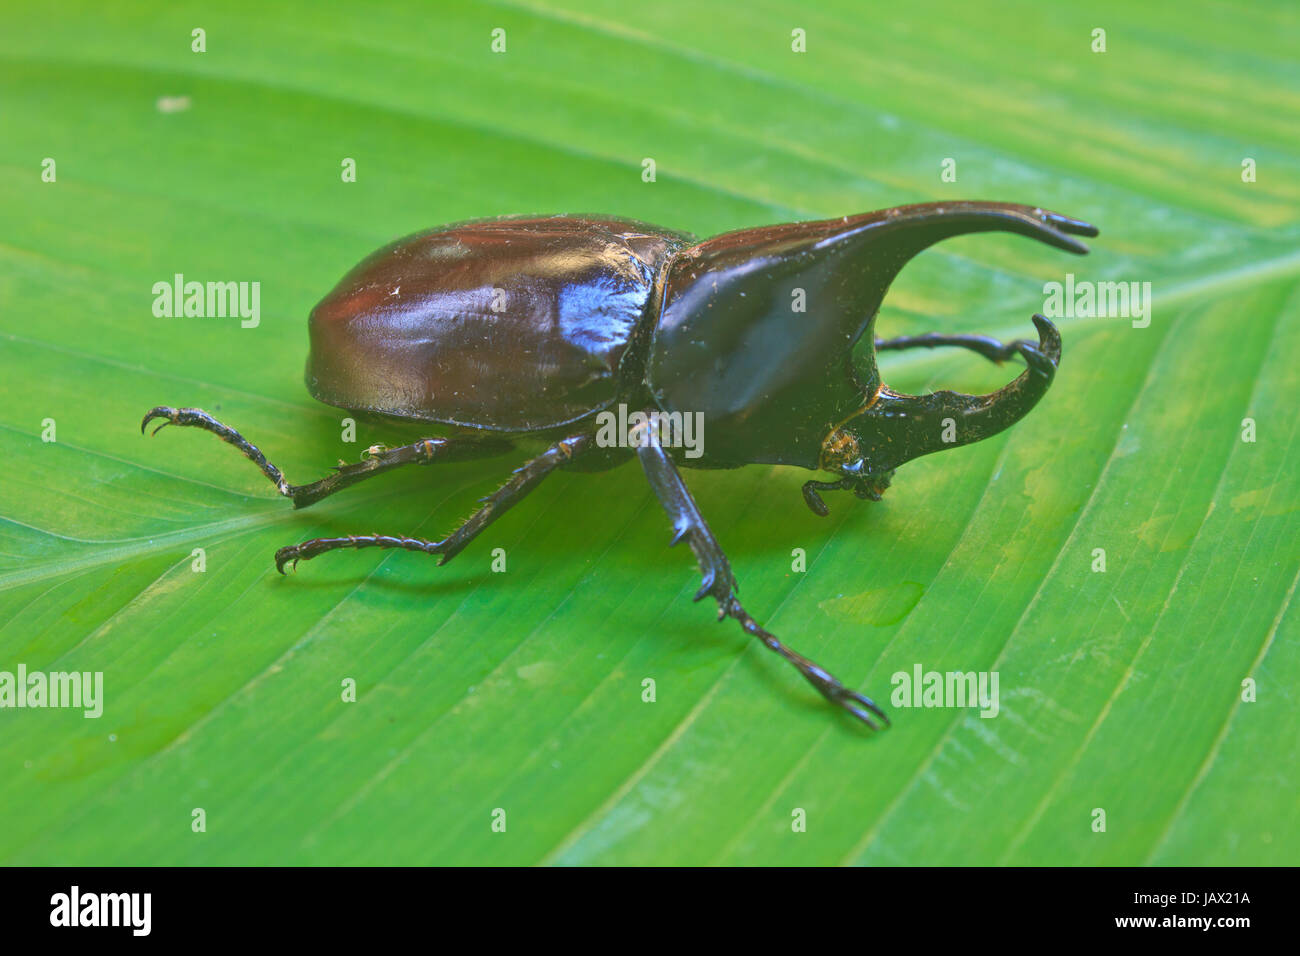 insect from Thailand,  Beetle wing is also known as hard or that Xylotrupes gideon - Stock Image